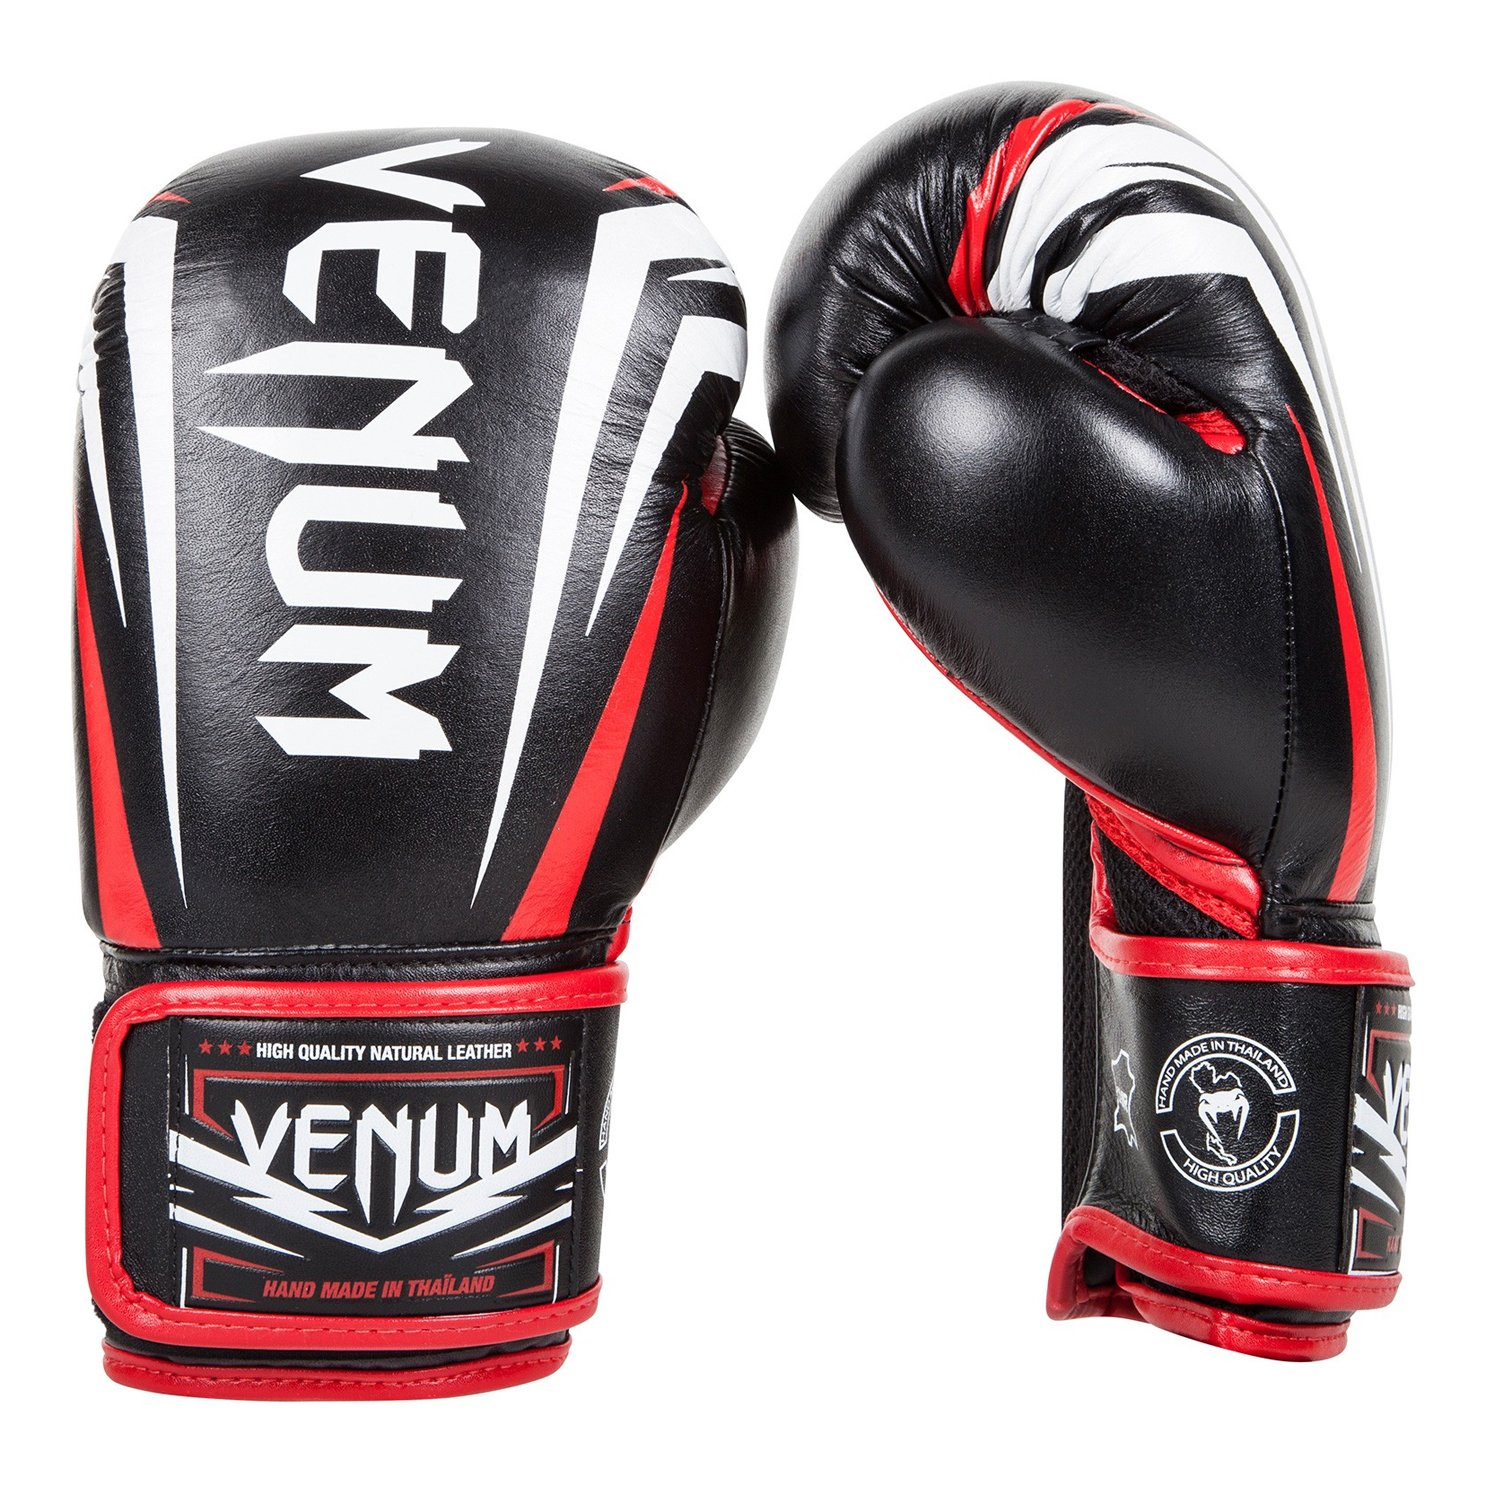 "Top Muay Thai Gloves Branches - Venum Nappa Leather ""Sharp"" Boxing Gloves"